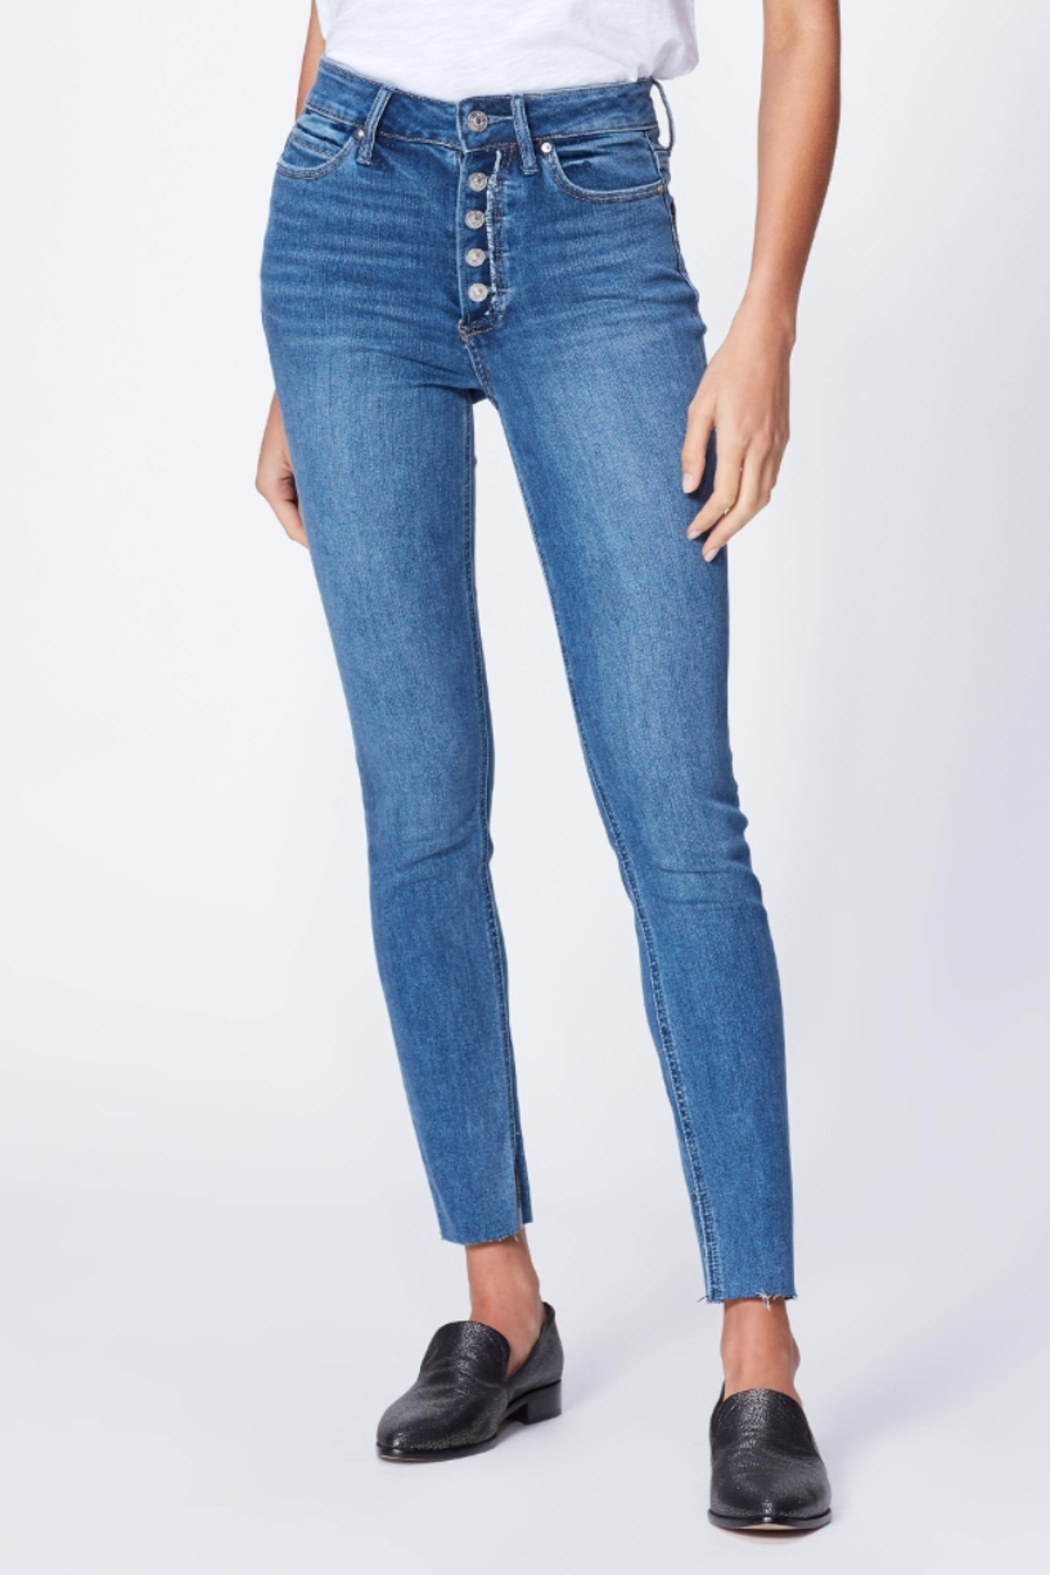 Paige Denim Belmoore Margot Skinny Jean - Main Image